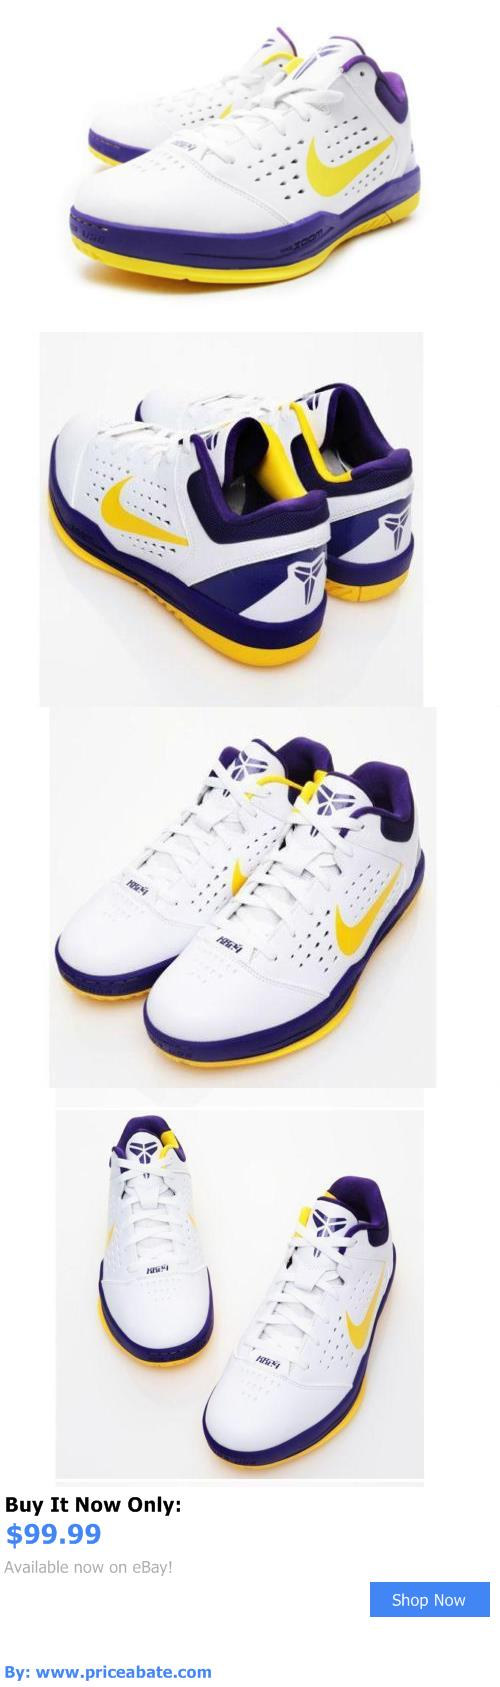 Basketball-New-Rare-Sz-Mens-Nike-Zoom-Kobe-Bryant-Kb-Gametime-Basketball-Shoes-Lakers-BUY-IT-N-wallpaper-wp4804519